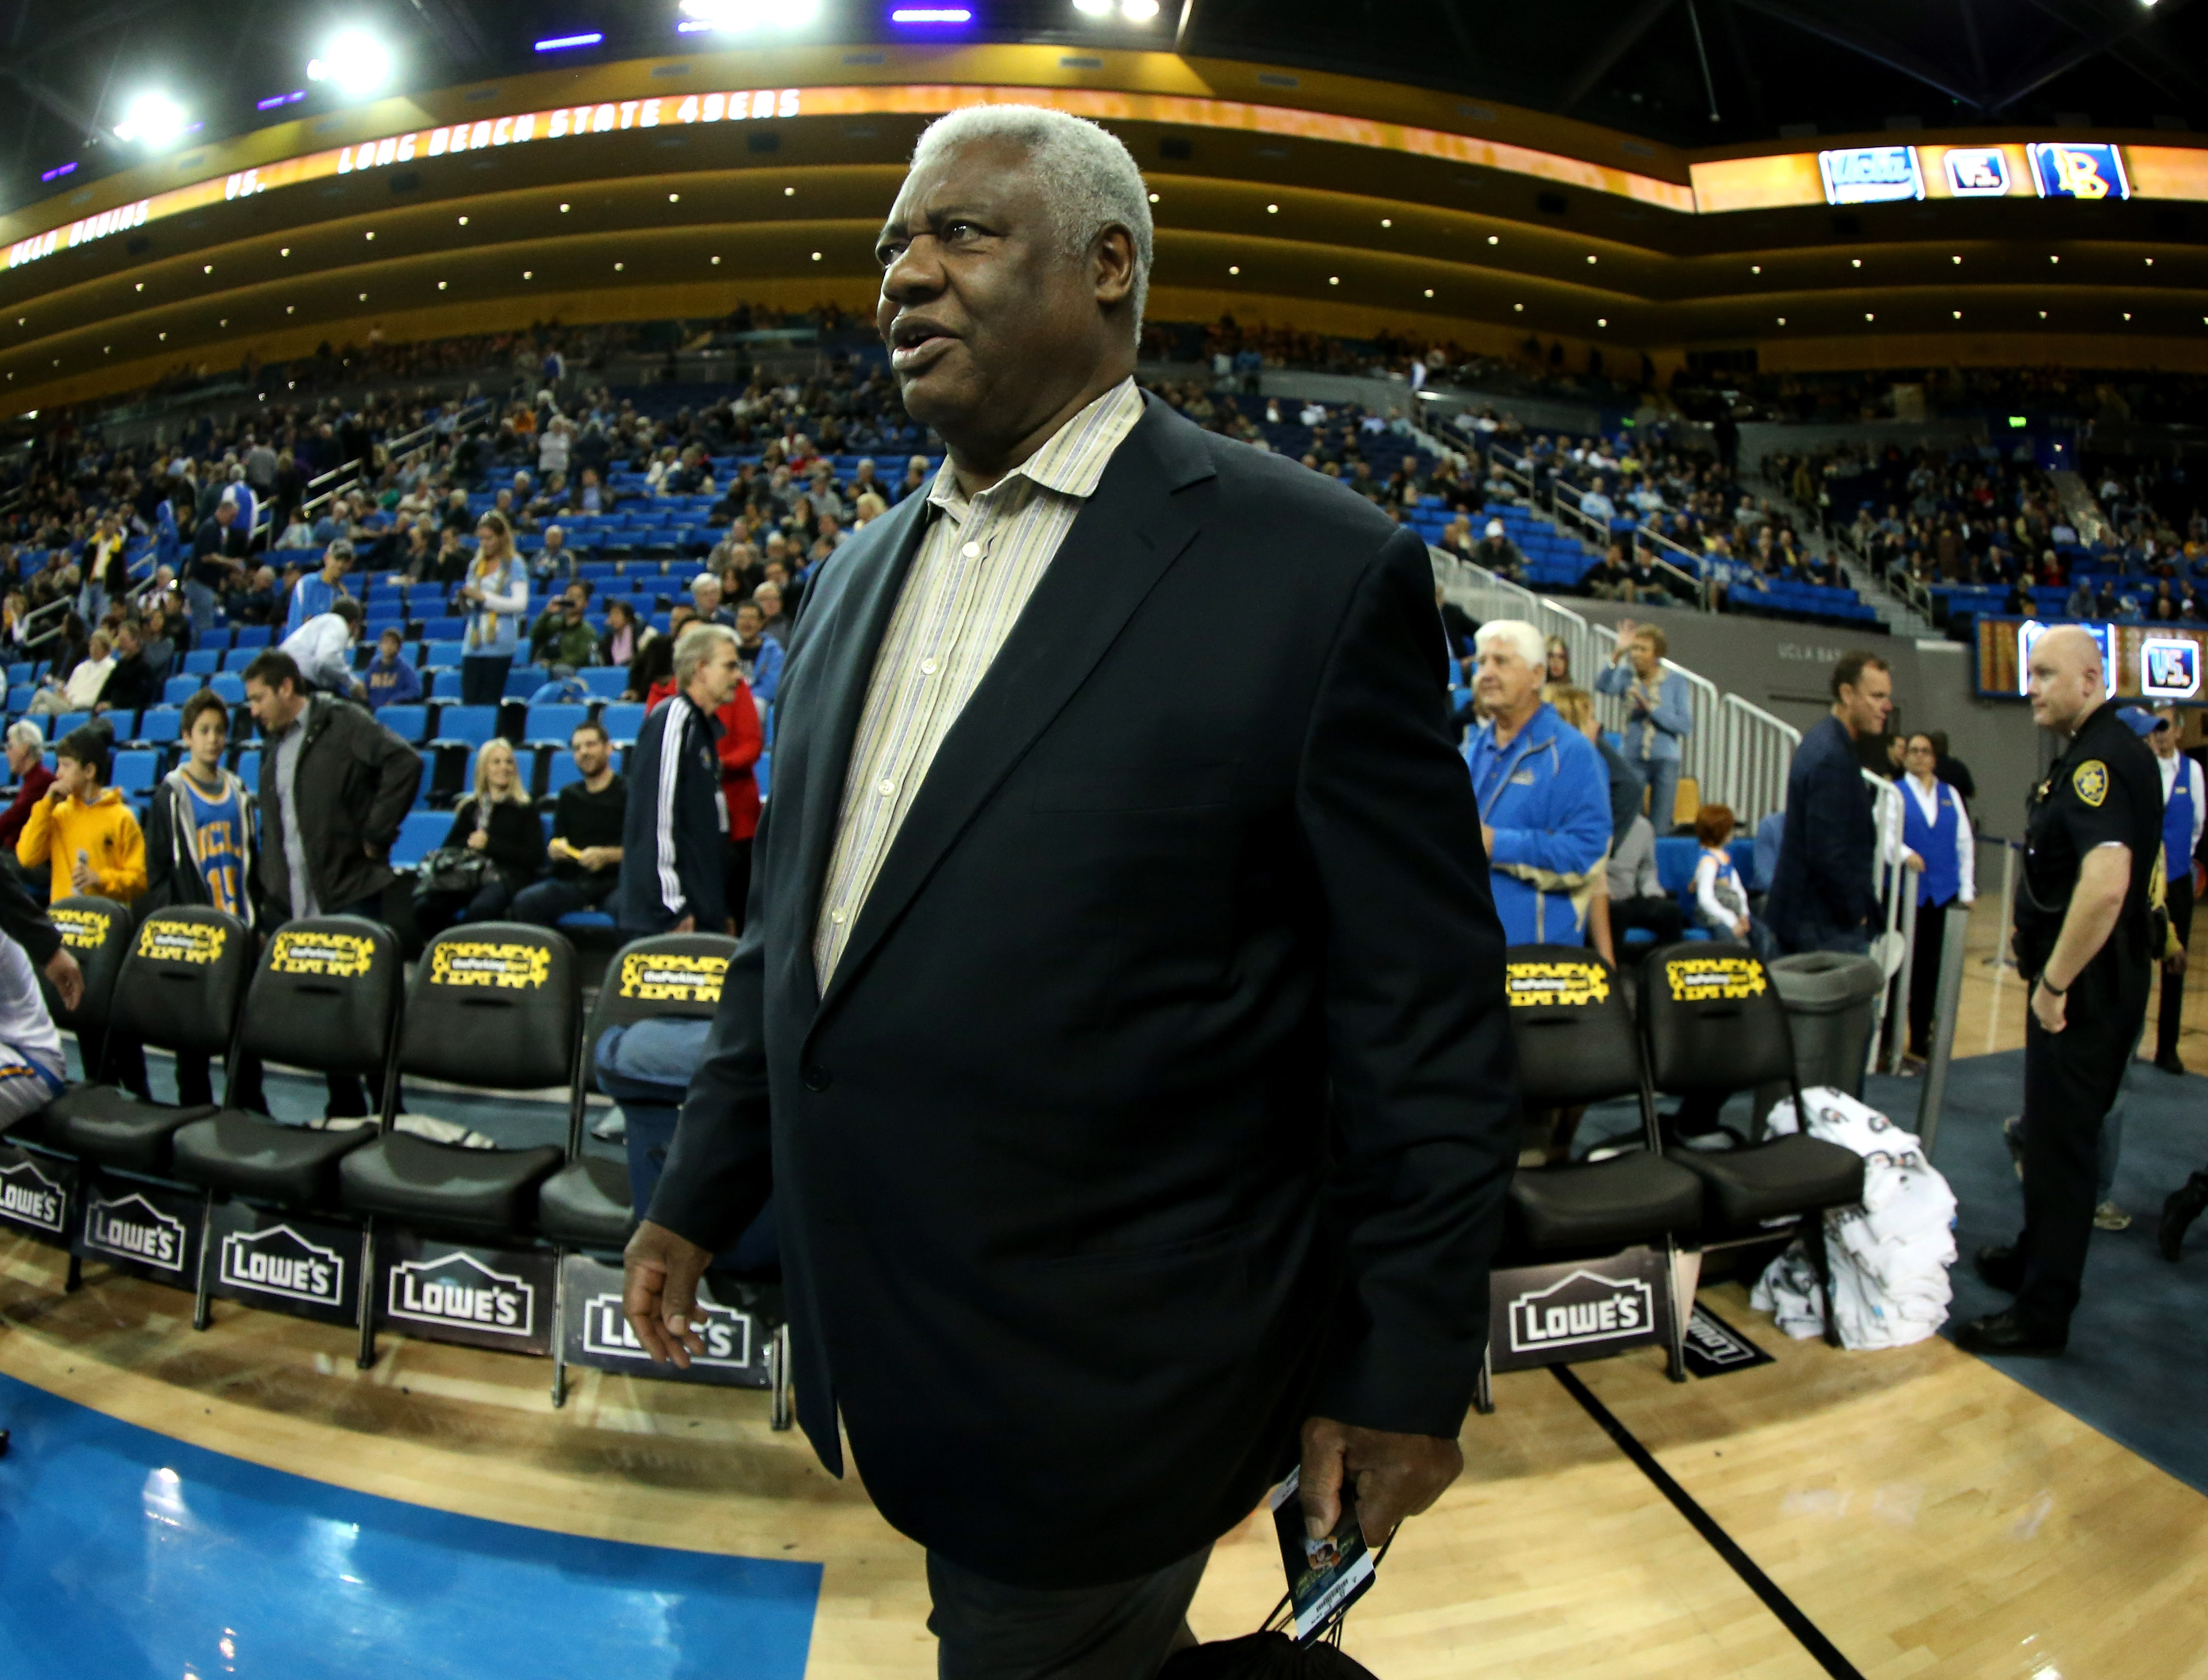 LOS ANGELES, CA - DECEMBER 18:  NBA legend Oscar Robertson attends the game between the Long Beach State 49ers and the UCLA Bruins at Pauley Pavilion on December 18, 2012 in Los Angeles, California.  (Photo by Stephen Dunn/Getty Images)